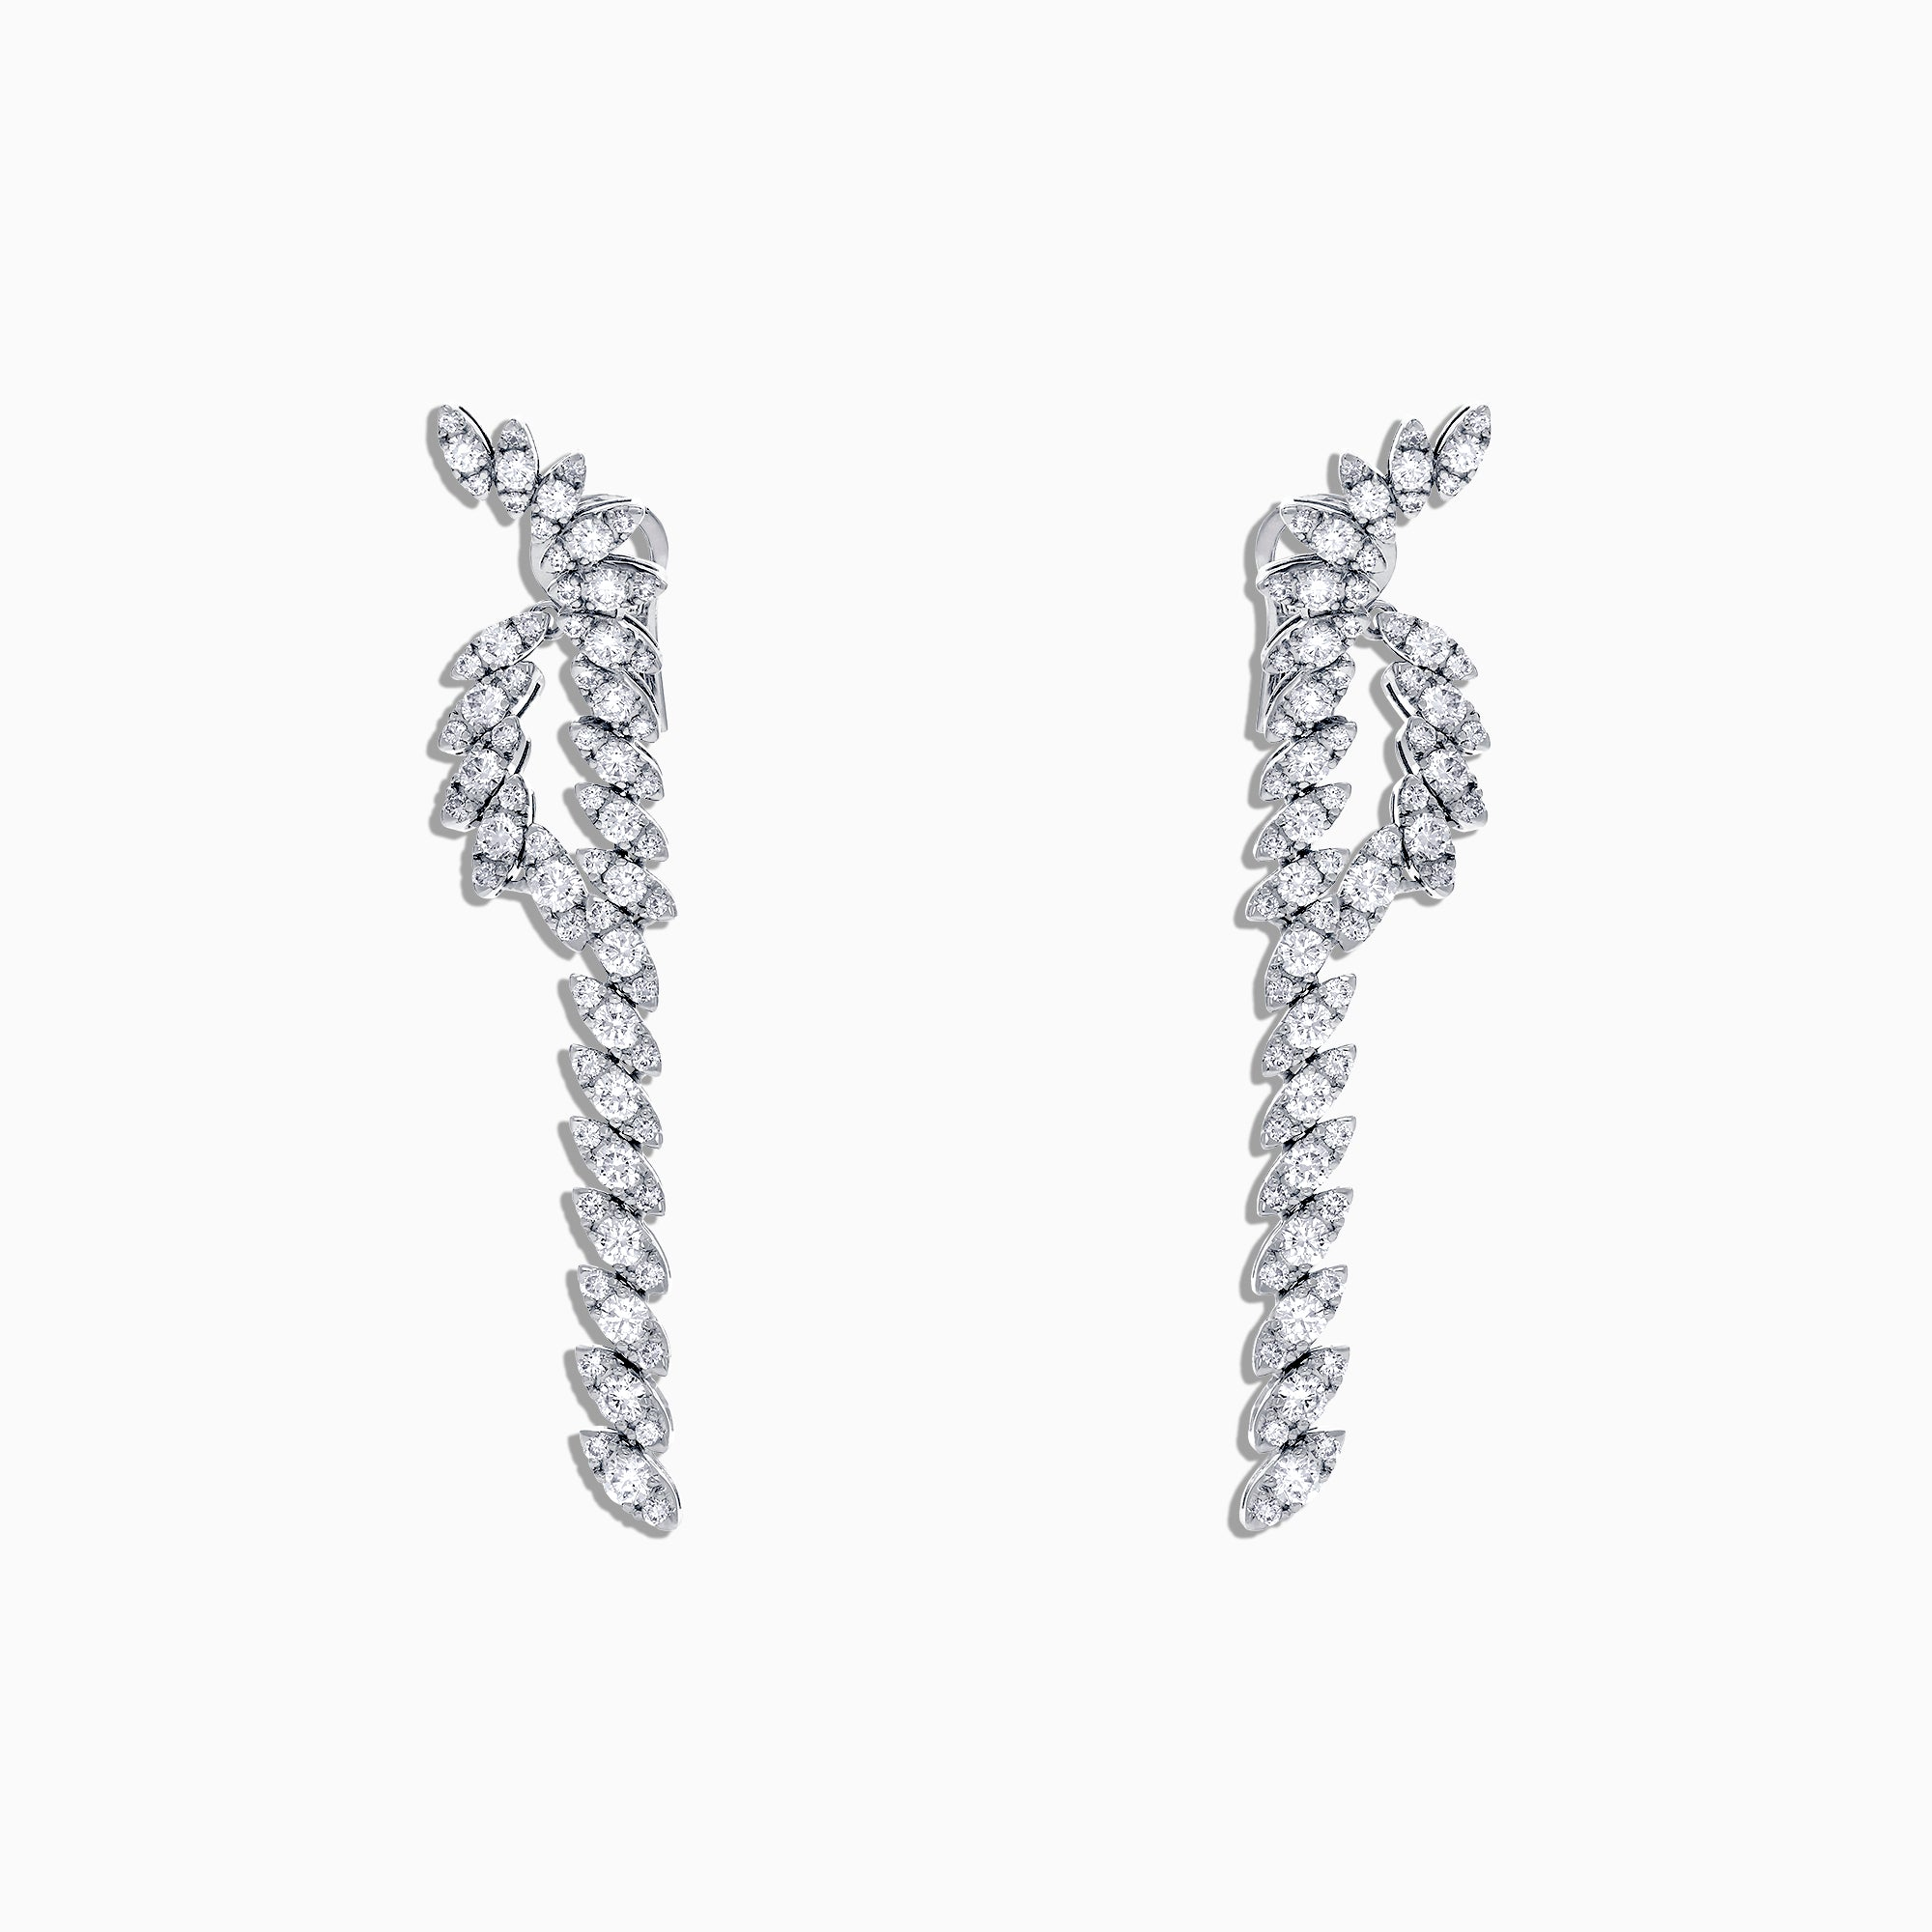 Effy Hematian 18K White Gold Diamond Earrings, 5.88 TCW